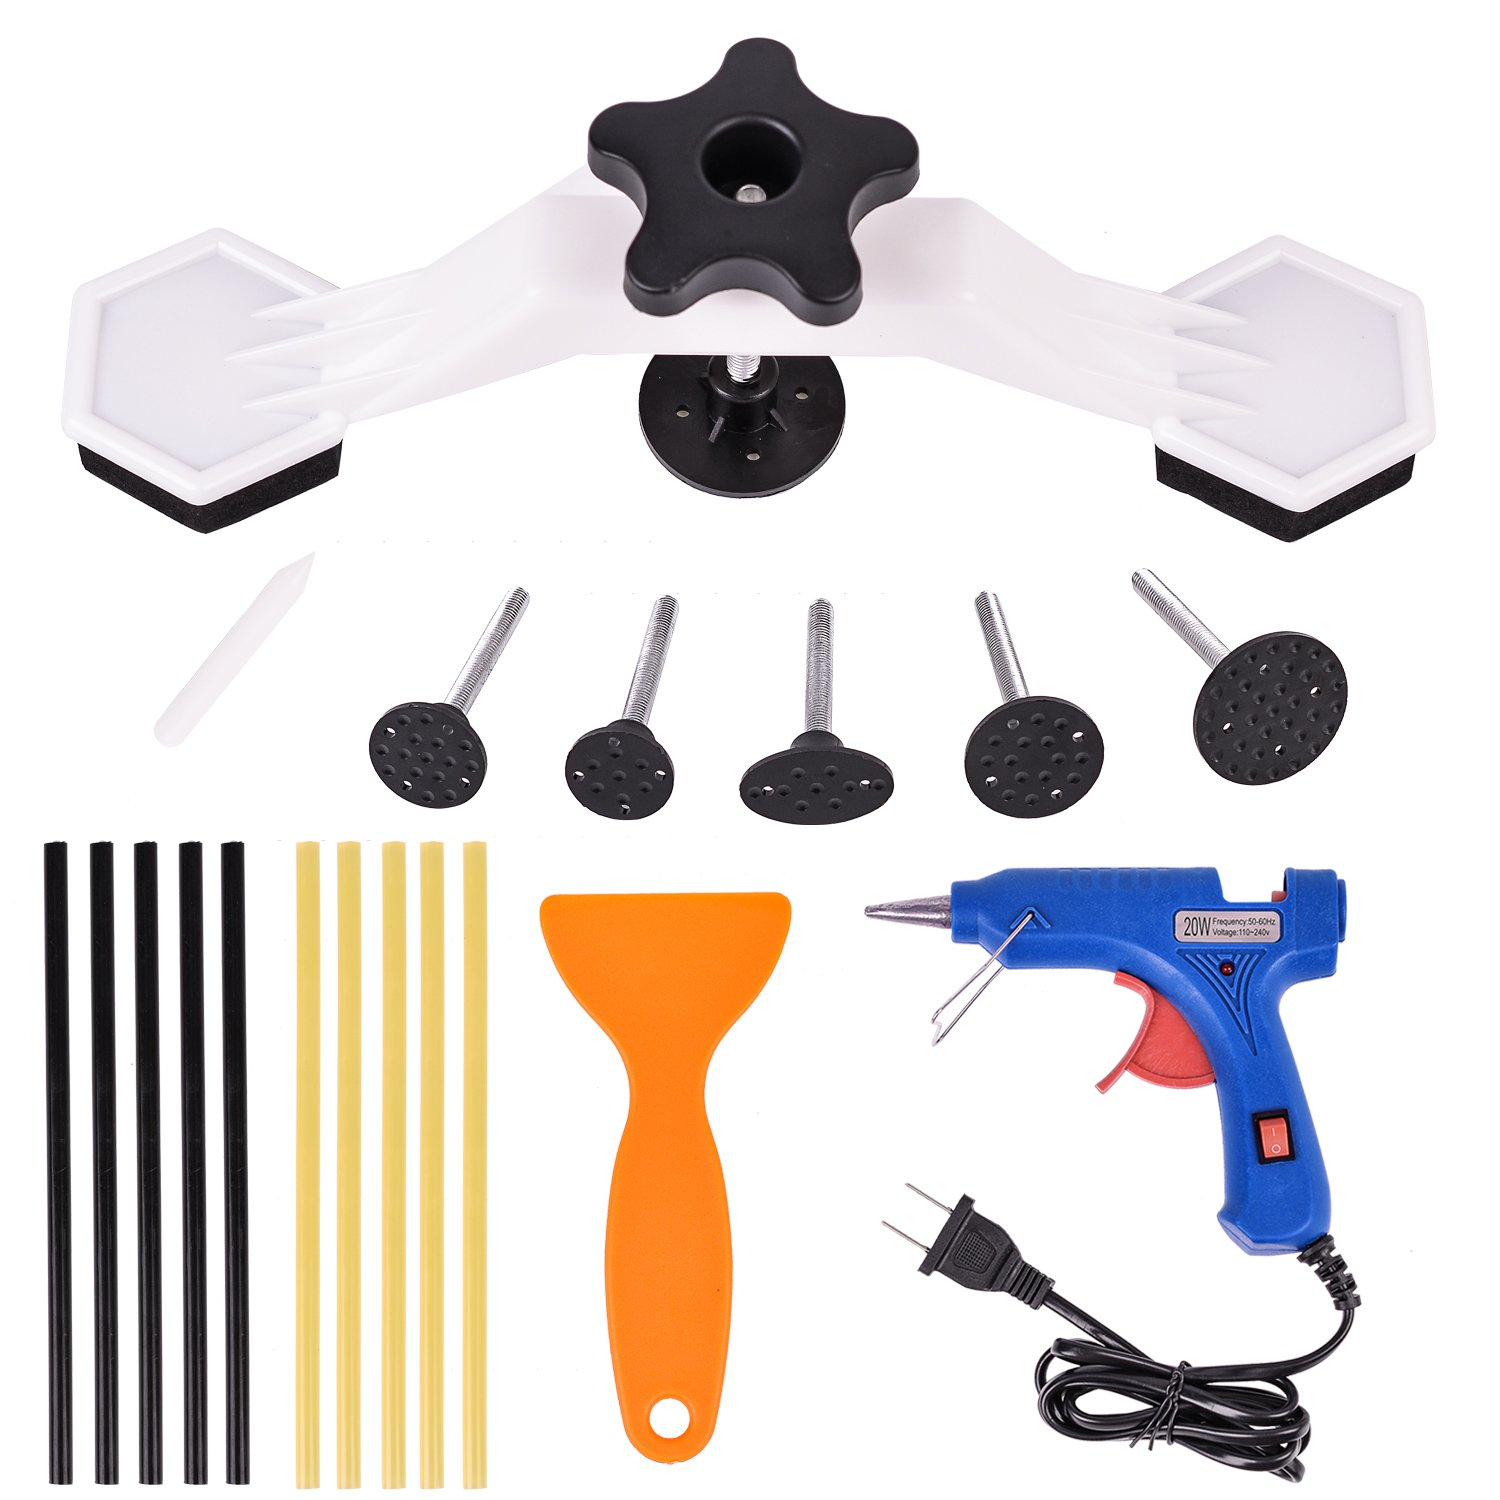 Queenti Car Body Dent Bridge Puller Tool Kits, Pop a Dent Paintless Ding Repair PDR Tools with 20w Hot Melt Glue Gun and 10pcs Glue Stick, Glue Shovel for Car Auto Truck Motorcycle Dent Removal by Queenti (Image #1)